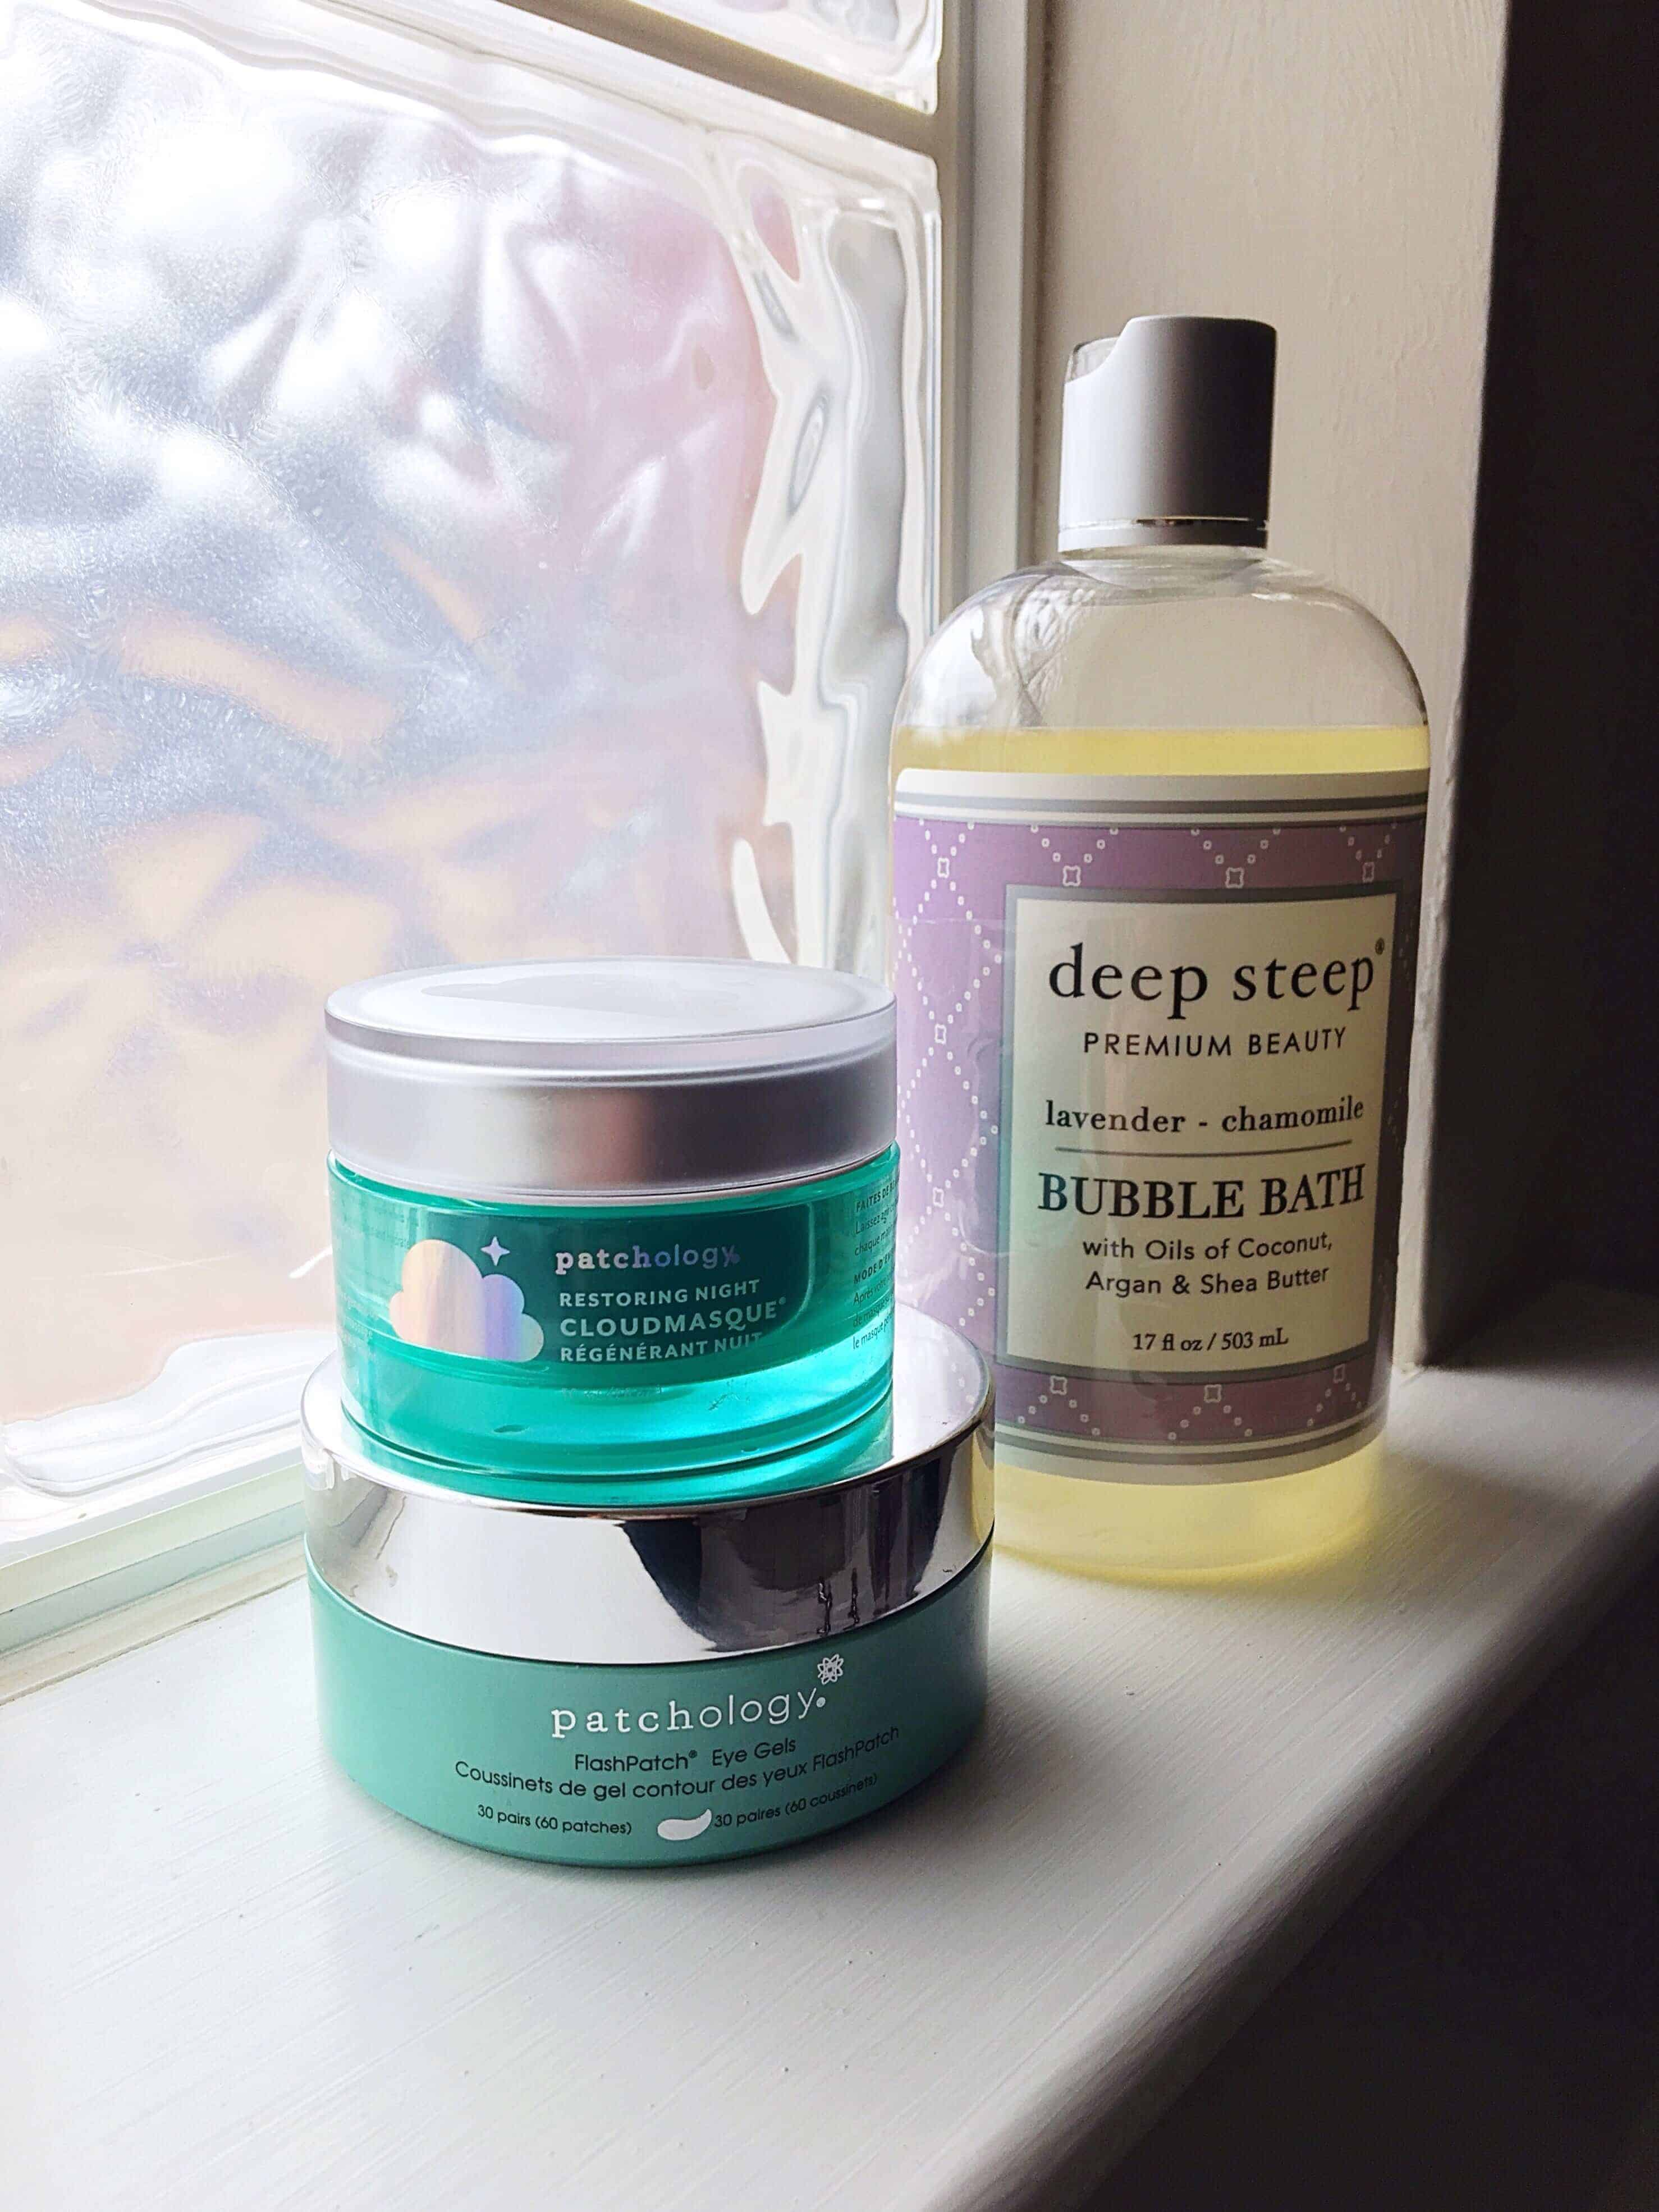 These 6 must-have beauty products are perfect for those days where you just need some extra pampering and you want to treat yourself to some self care and relaxation!